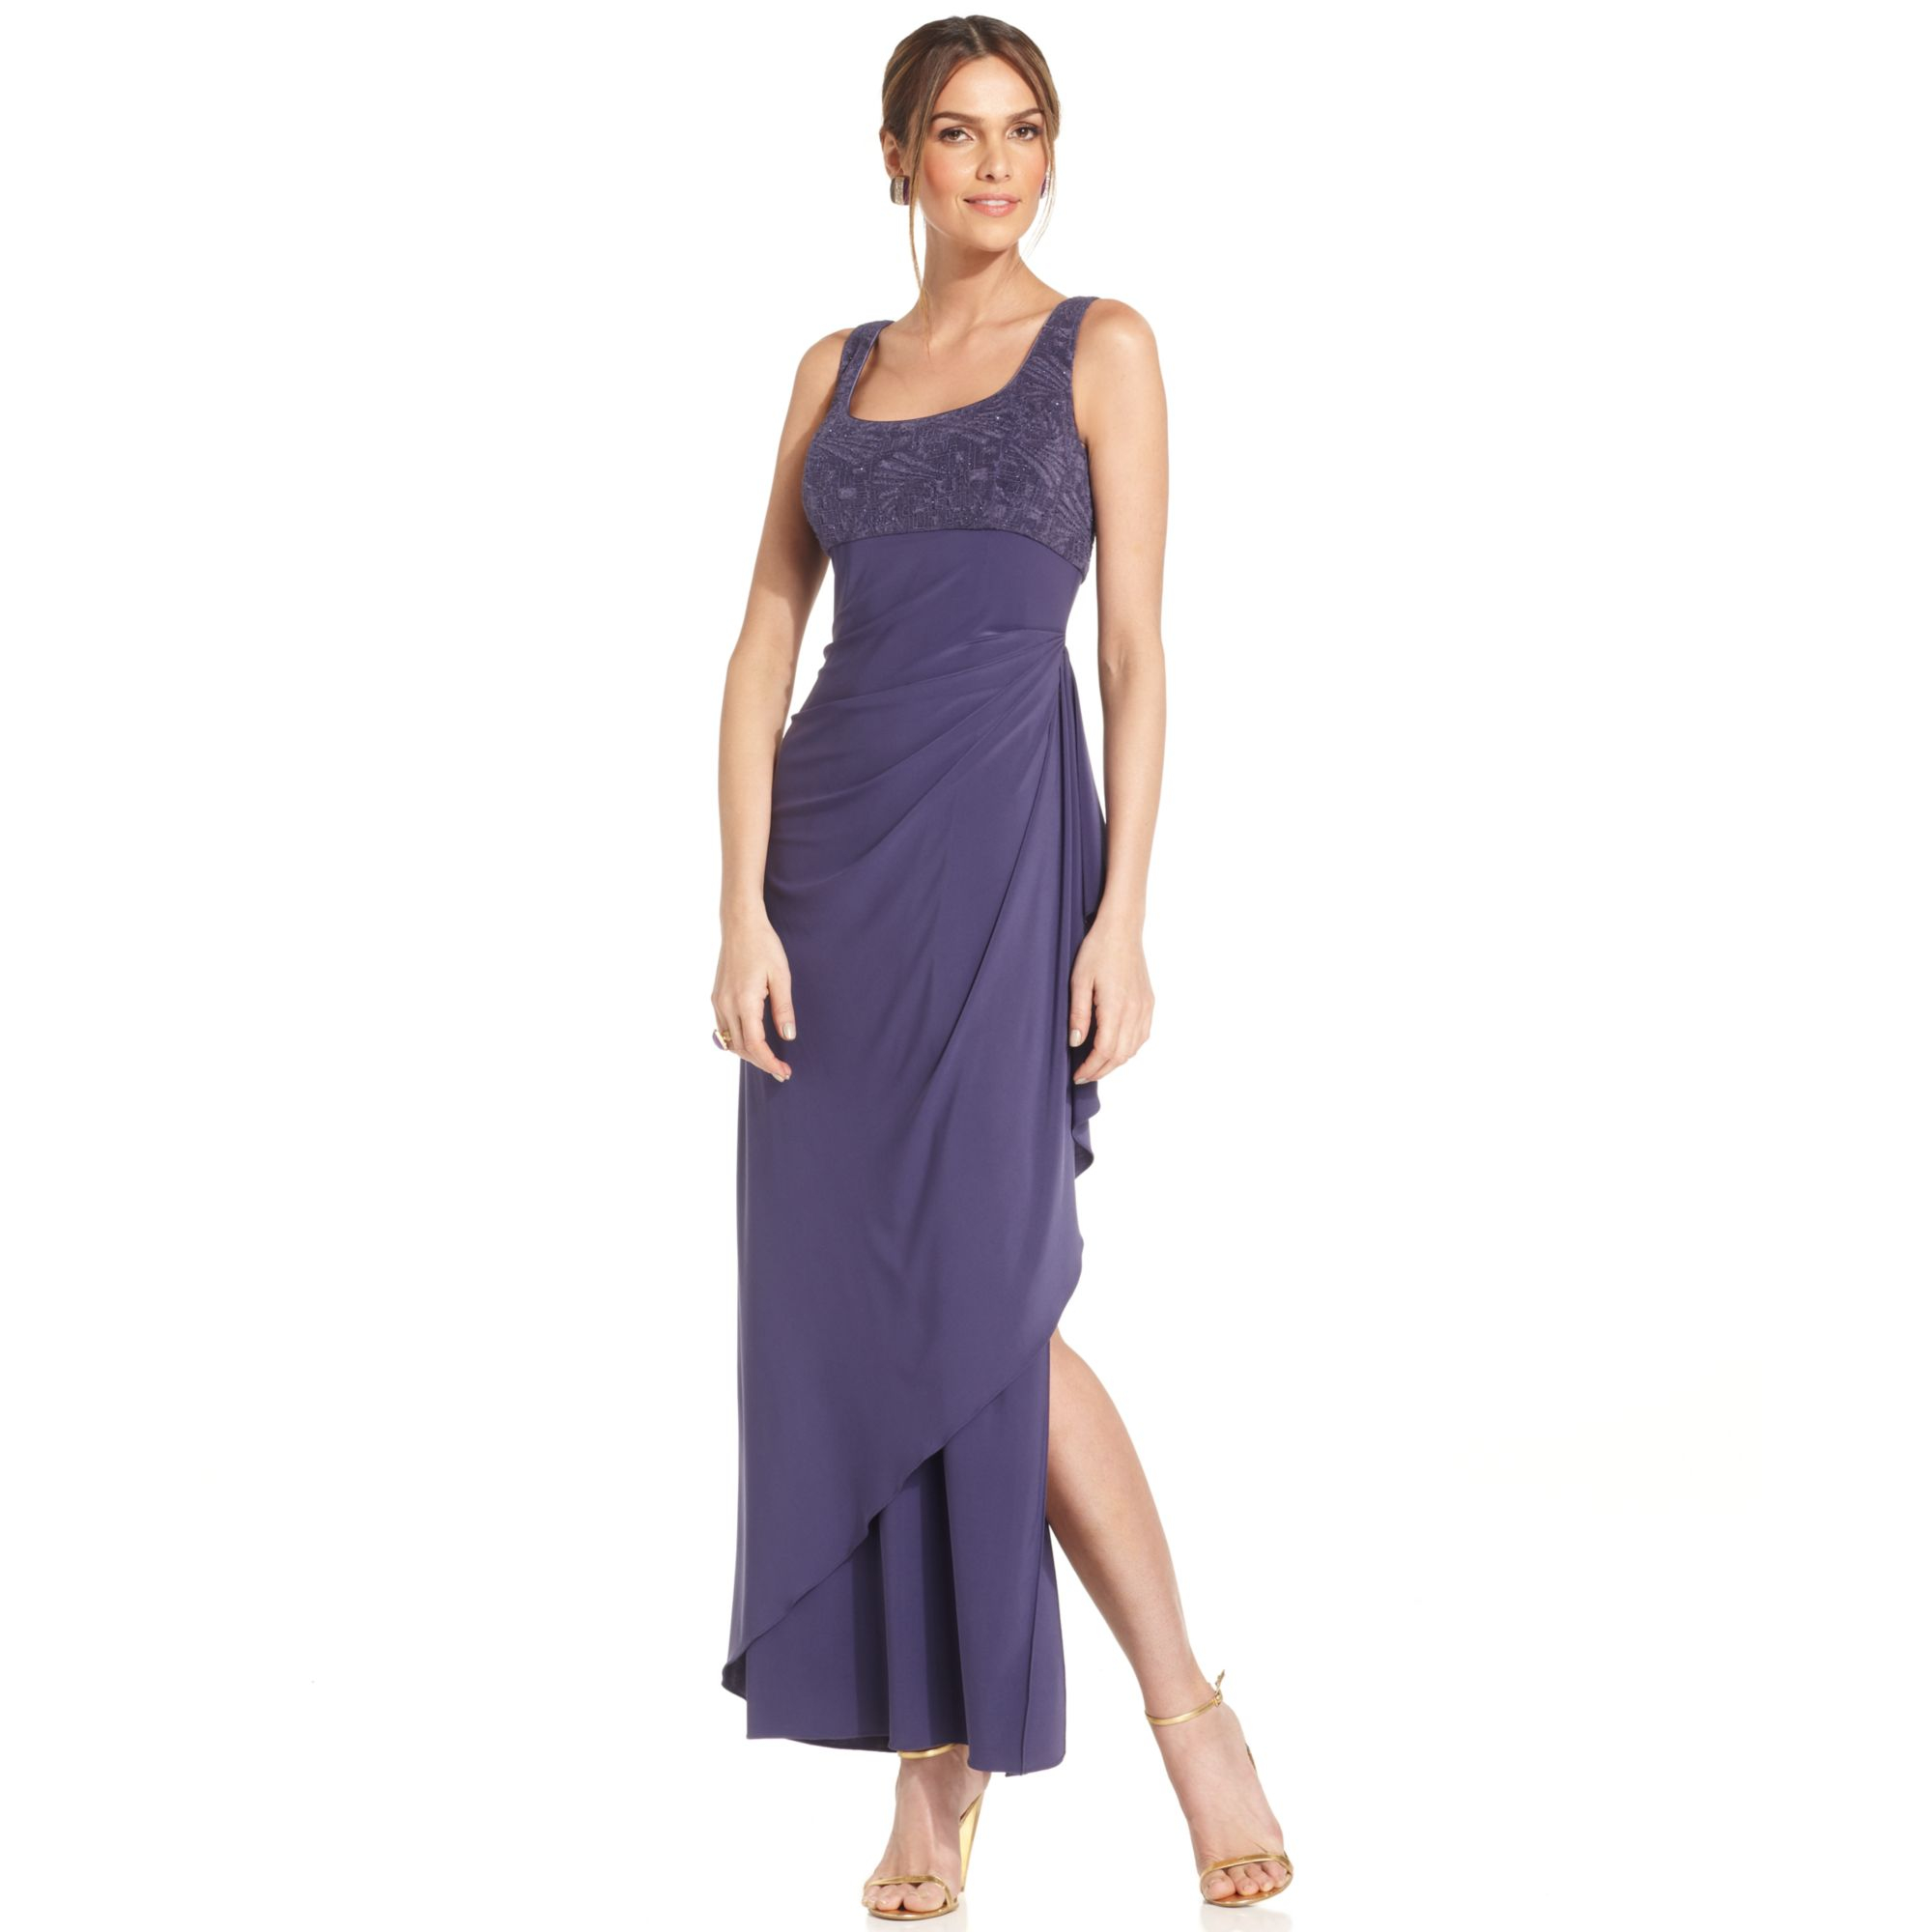 Lyst - Alex Evenings Petite Sleeveless Glitter Gown and Jacket in Purple